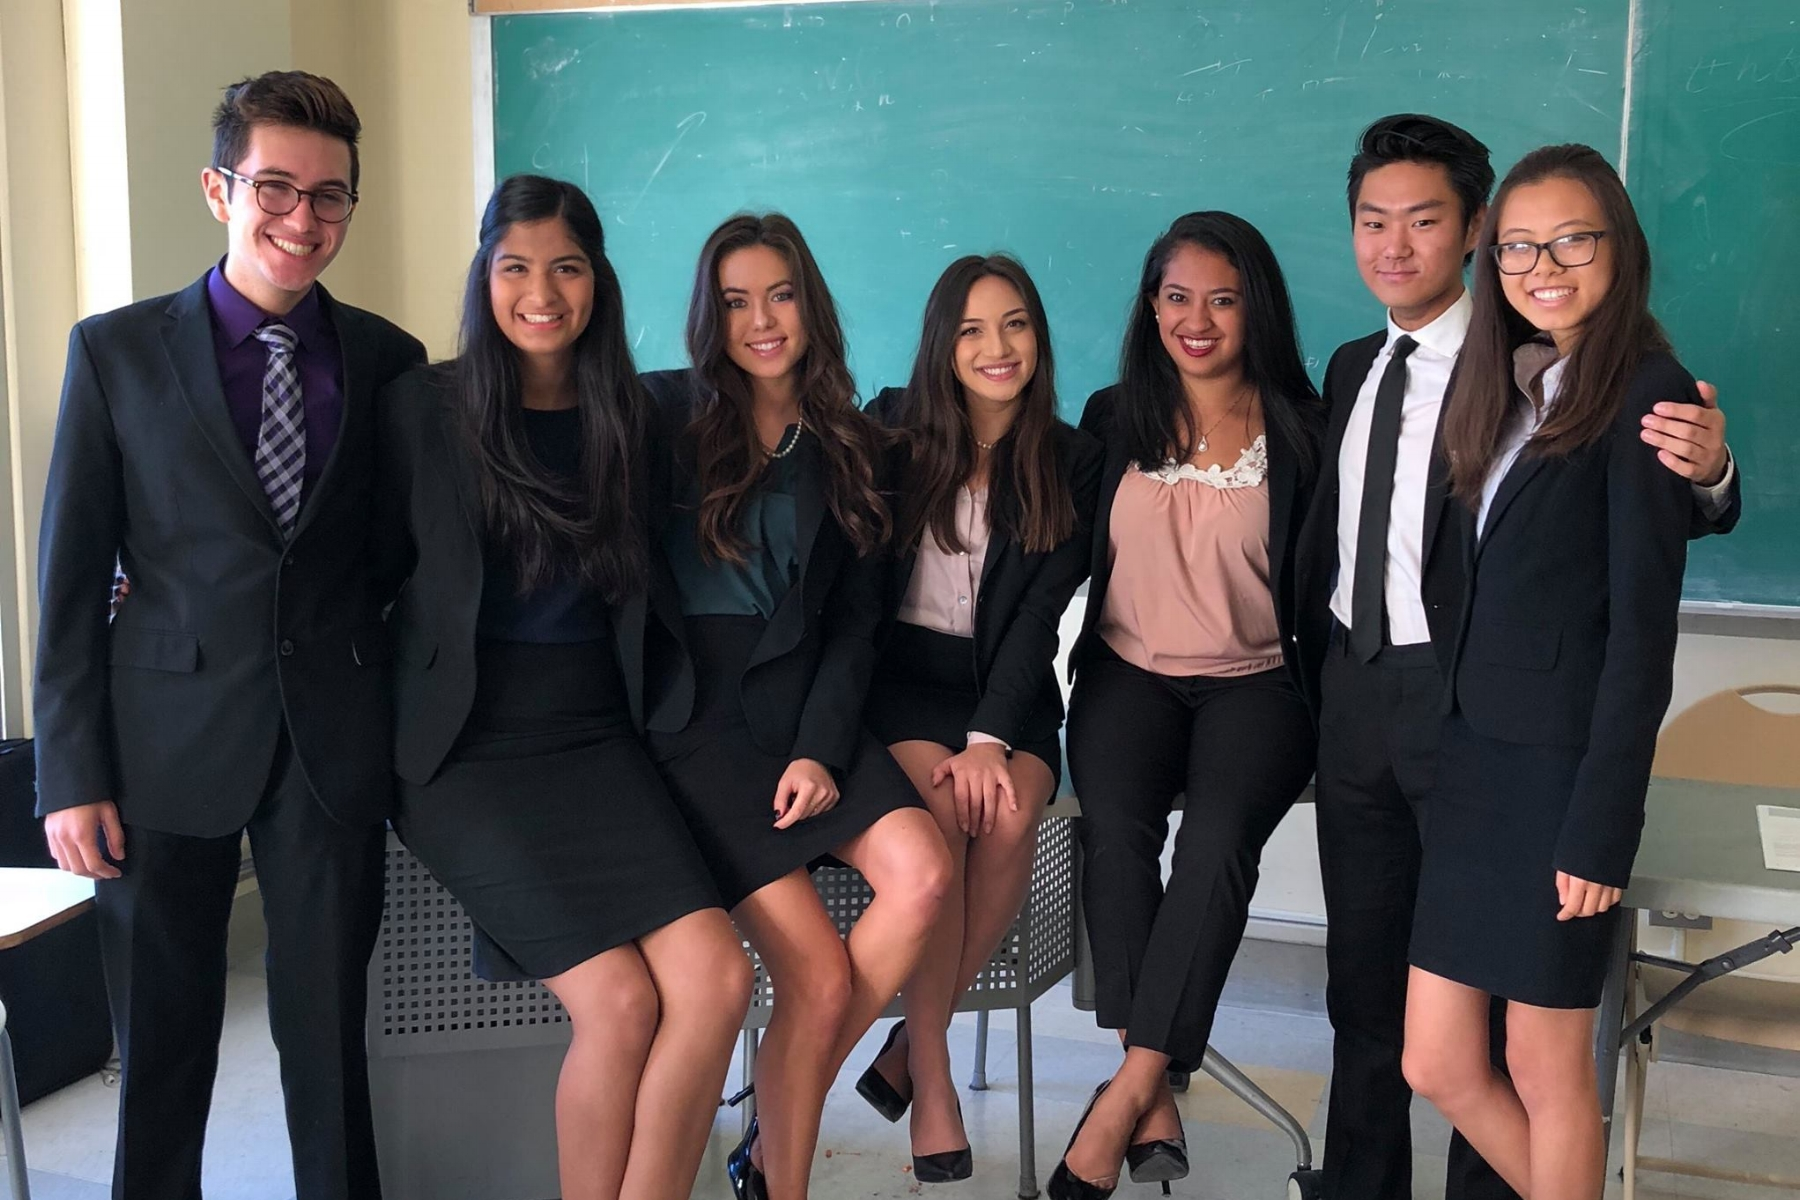 AAMTI IV (11/4 - 11/5) - This weekend, we hosted our 4th annual Average American Mock Trial Invitational. Thank you to everyone who attended - we hope your weekend was exceedingly average! Our two Cal teams earned 5th and 8th places, with records of 6-2 and 5-3 respectively. Go Bears! Special congratulations to...Justin Tsung, Outstanding Witness with 16/20 ranksJenny Jang, Outstanding Attorney with 20/20 ranksThank you to our program for helping to run our 4th fall invitational!